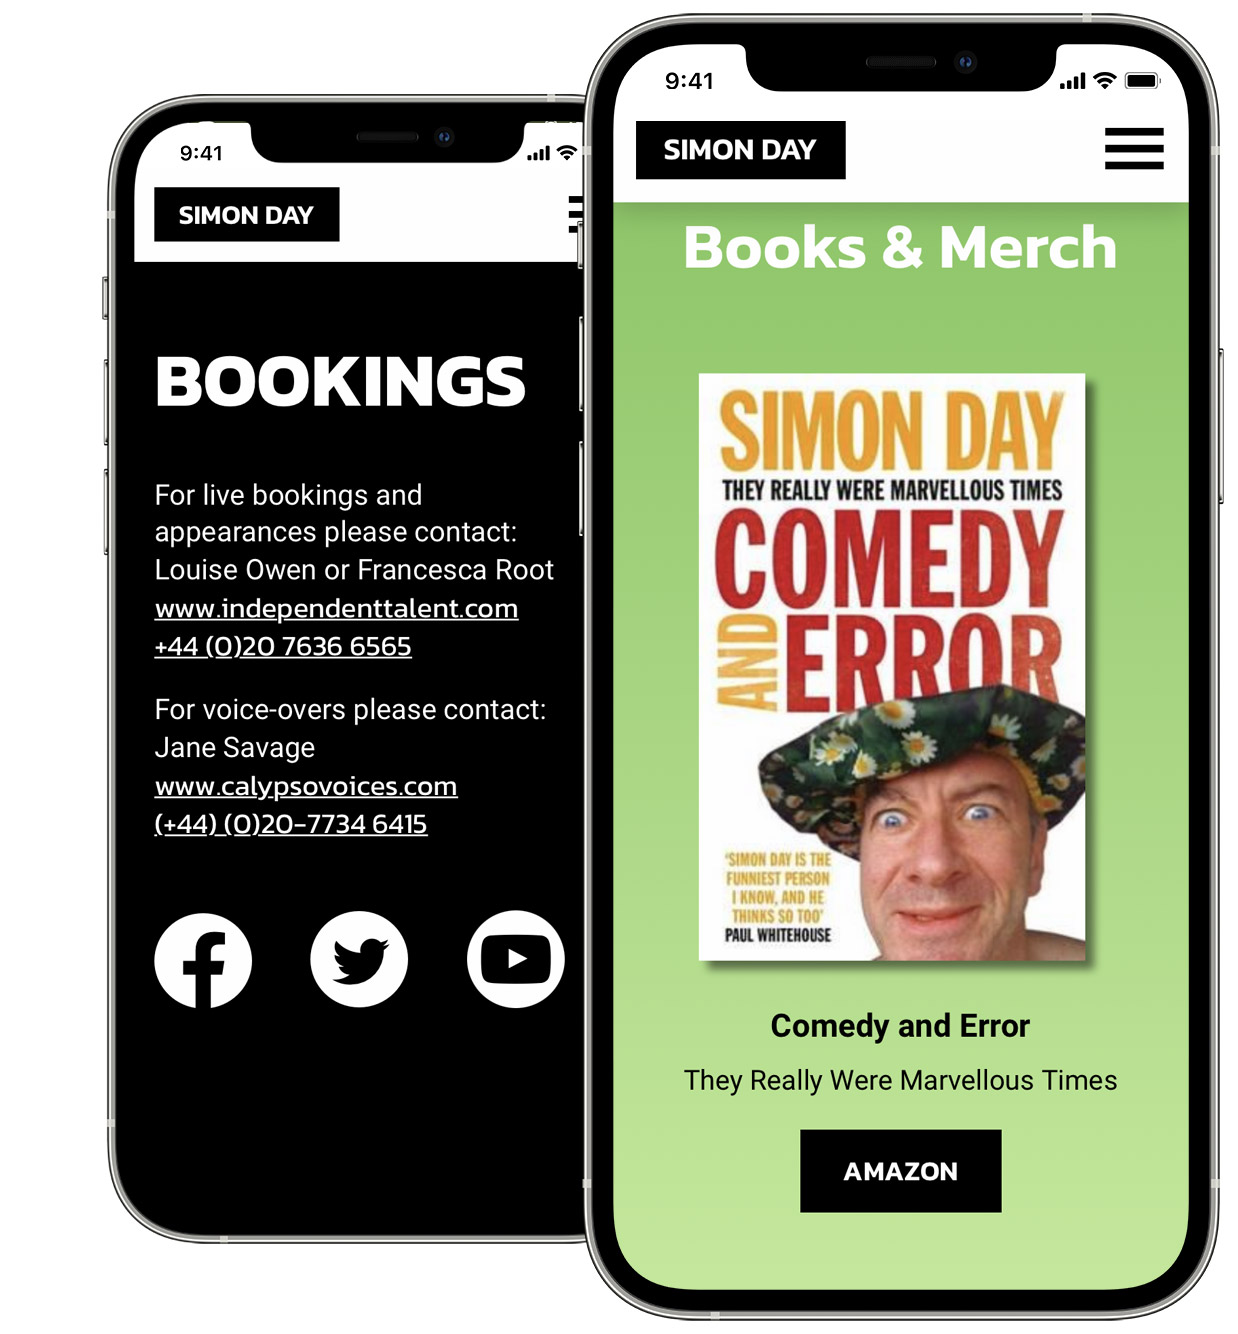 Simon Day Mobile Website Design for TV Personality